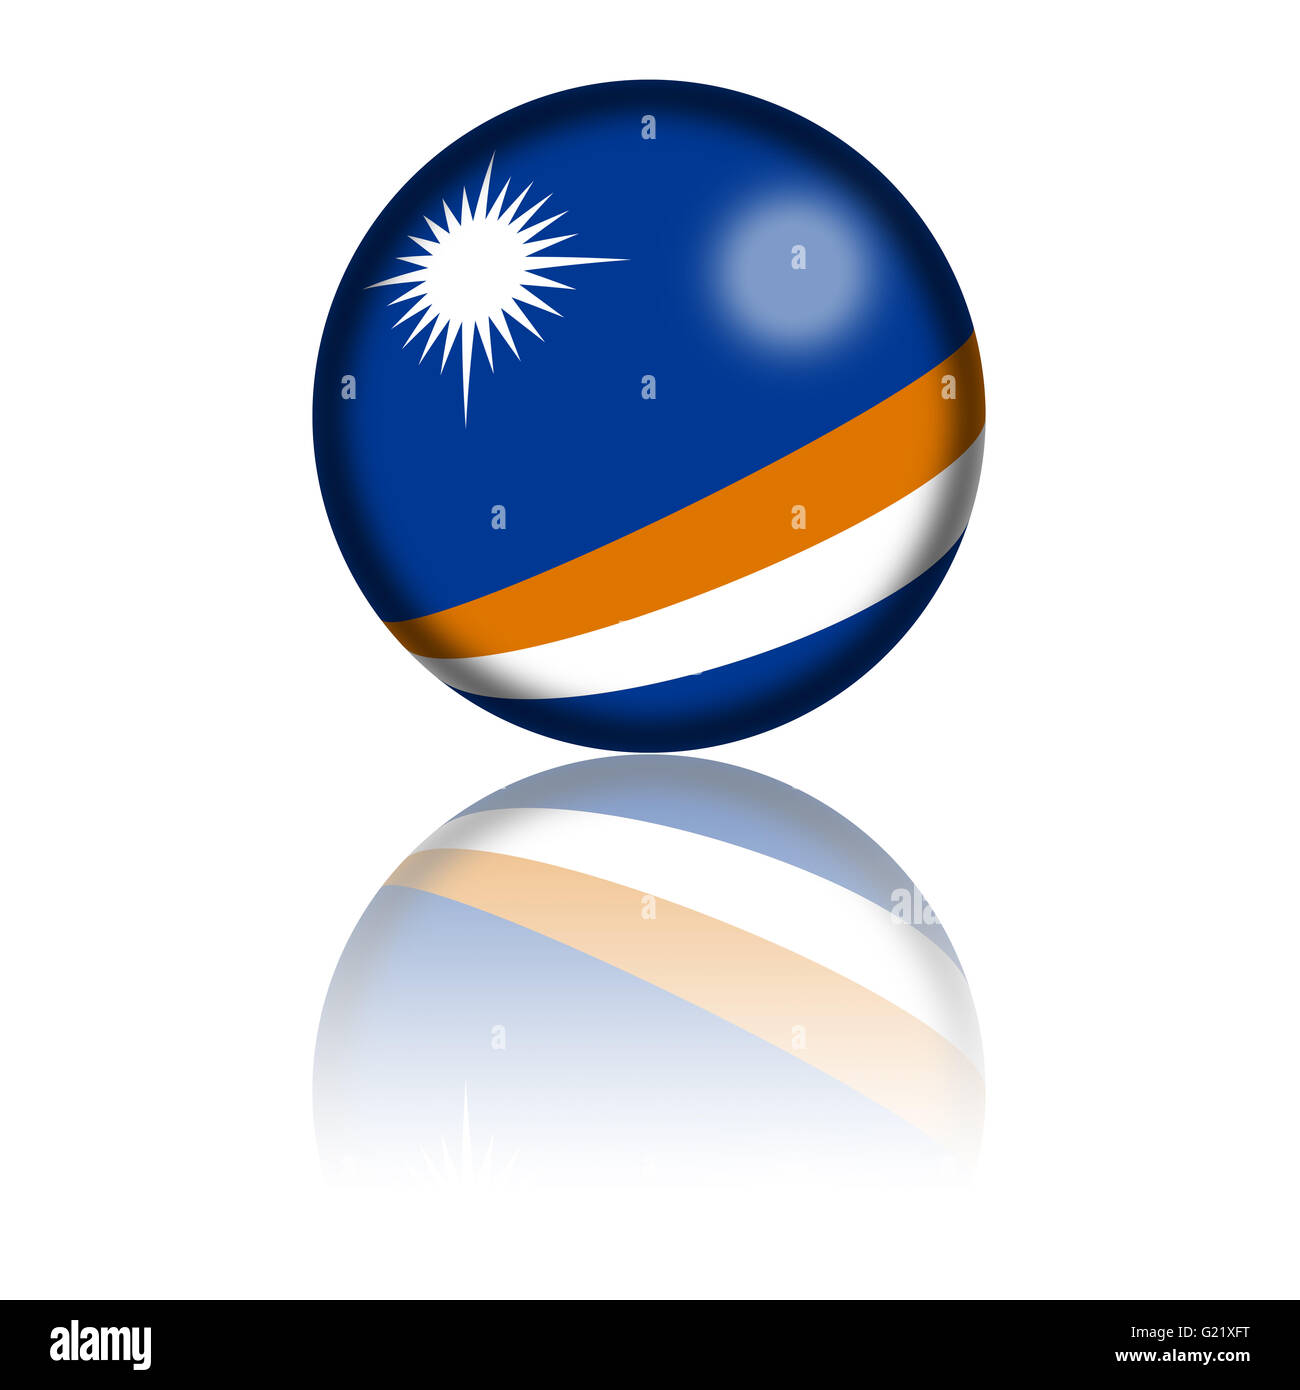 3D sphere or badge of Marshall Islands flag with reflection at bottom. - Stock Image